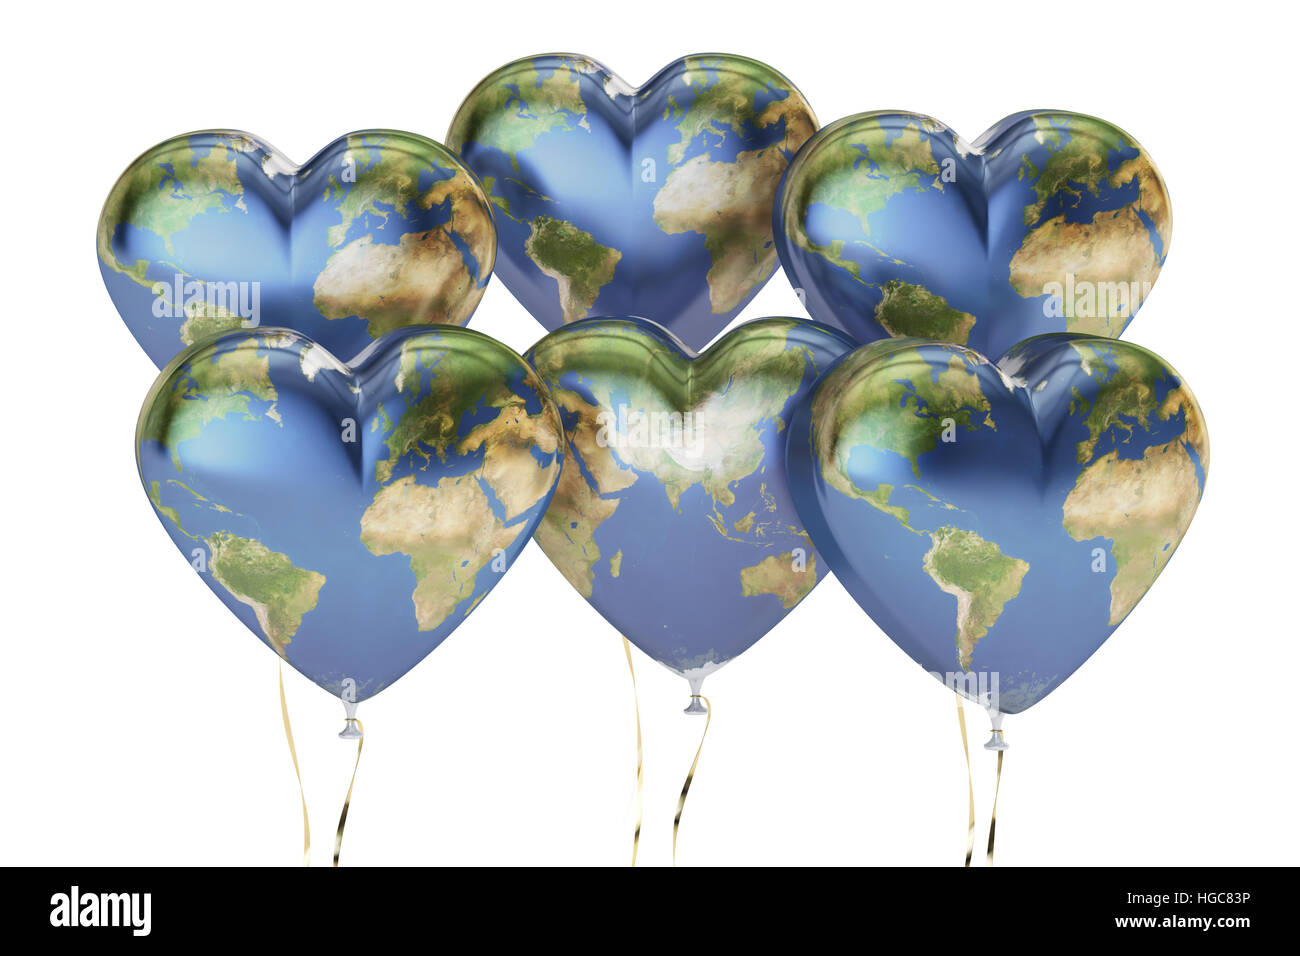 Balloons in the shape of hearts with map of earth 3d rendering balloons in the shape of hearts with map of earth 3d rendering isolated on white background gumiabroncs Choice Image